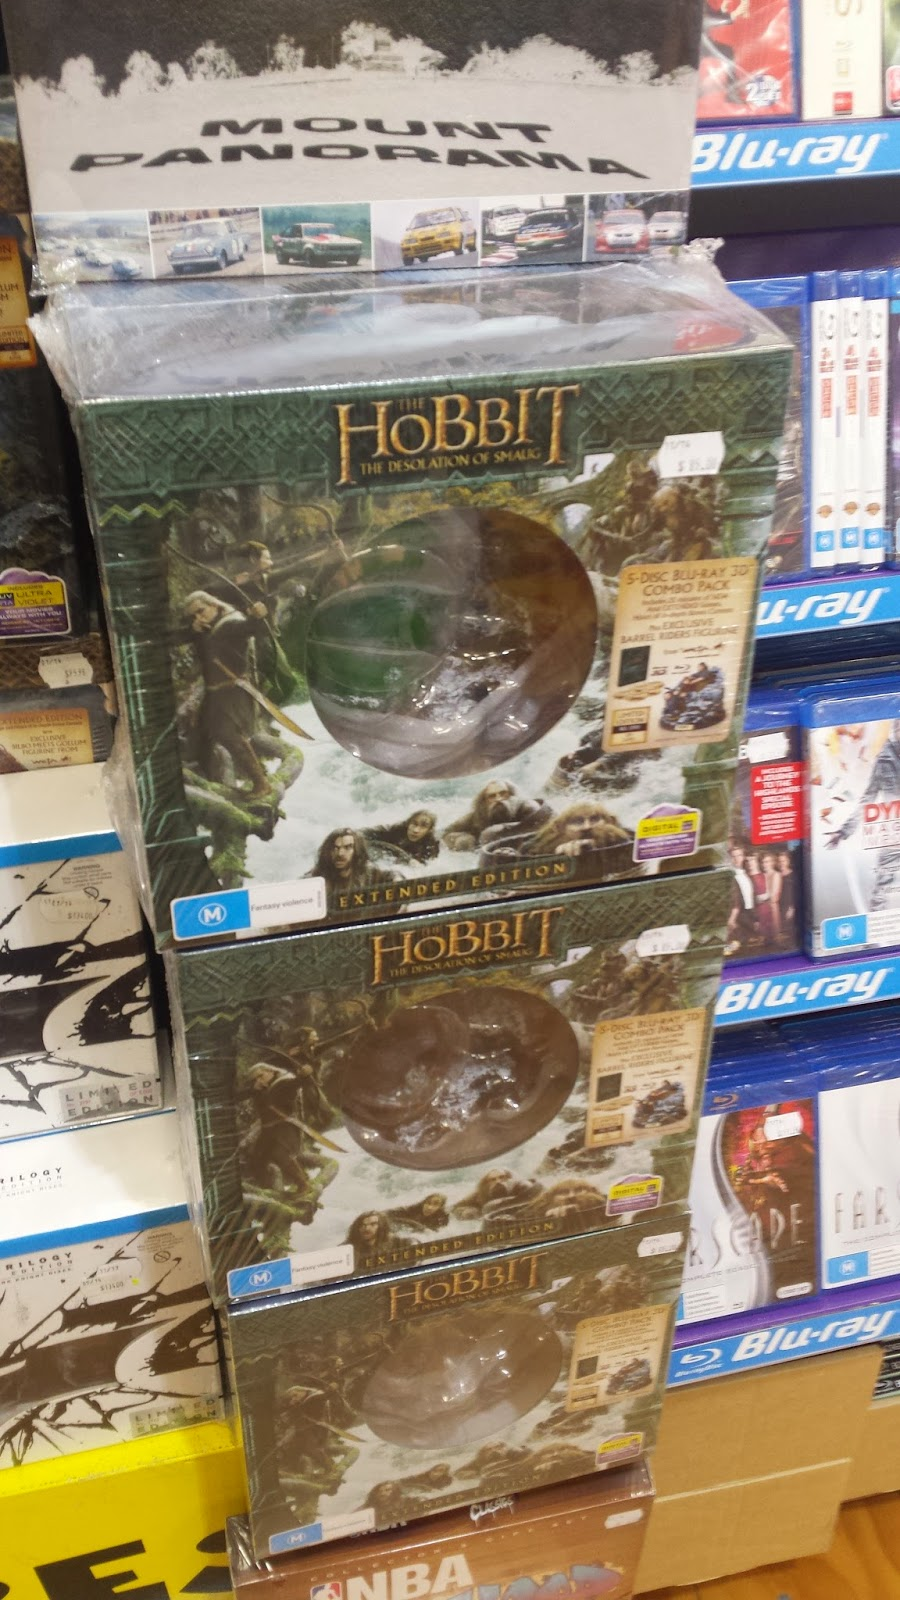 The Hobbit: Limited Edition